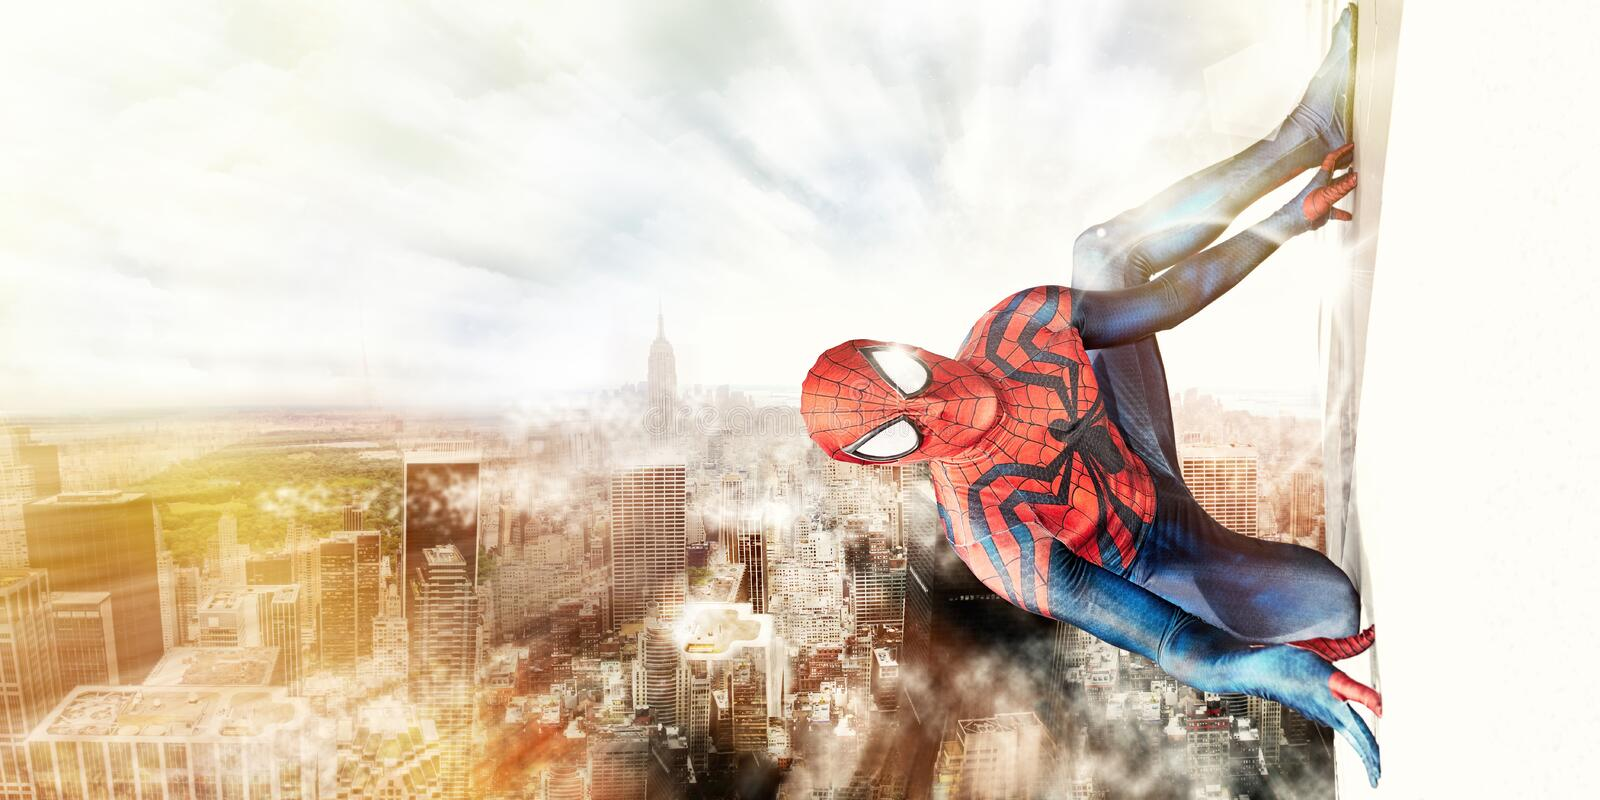 Spiderman and New York City. Romics 2015, Rome Italy. Posters created by me exclusively for sponsoring the international event. Festival of comics, cartoons and